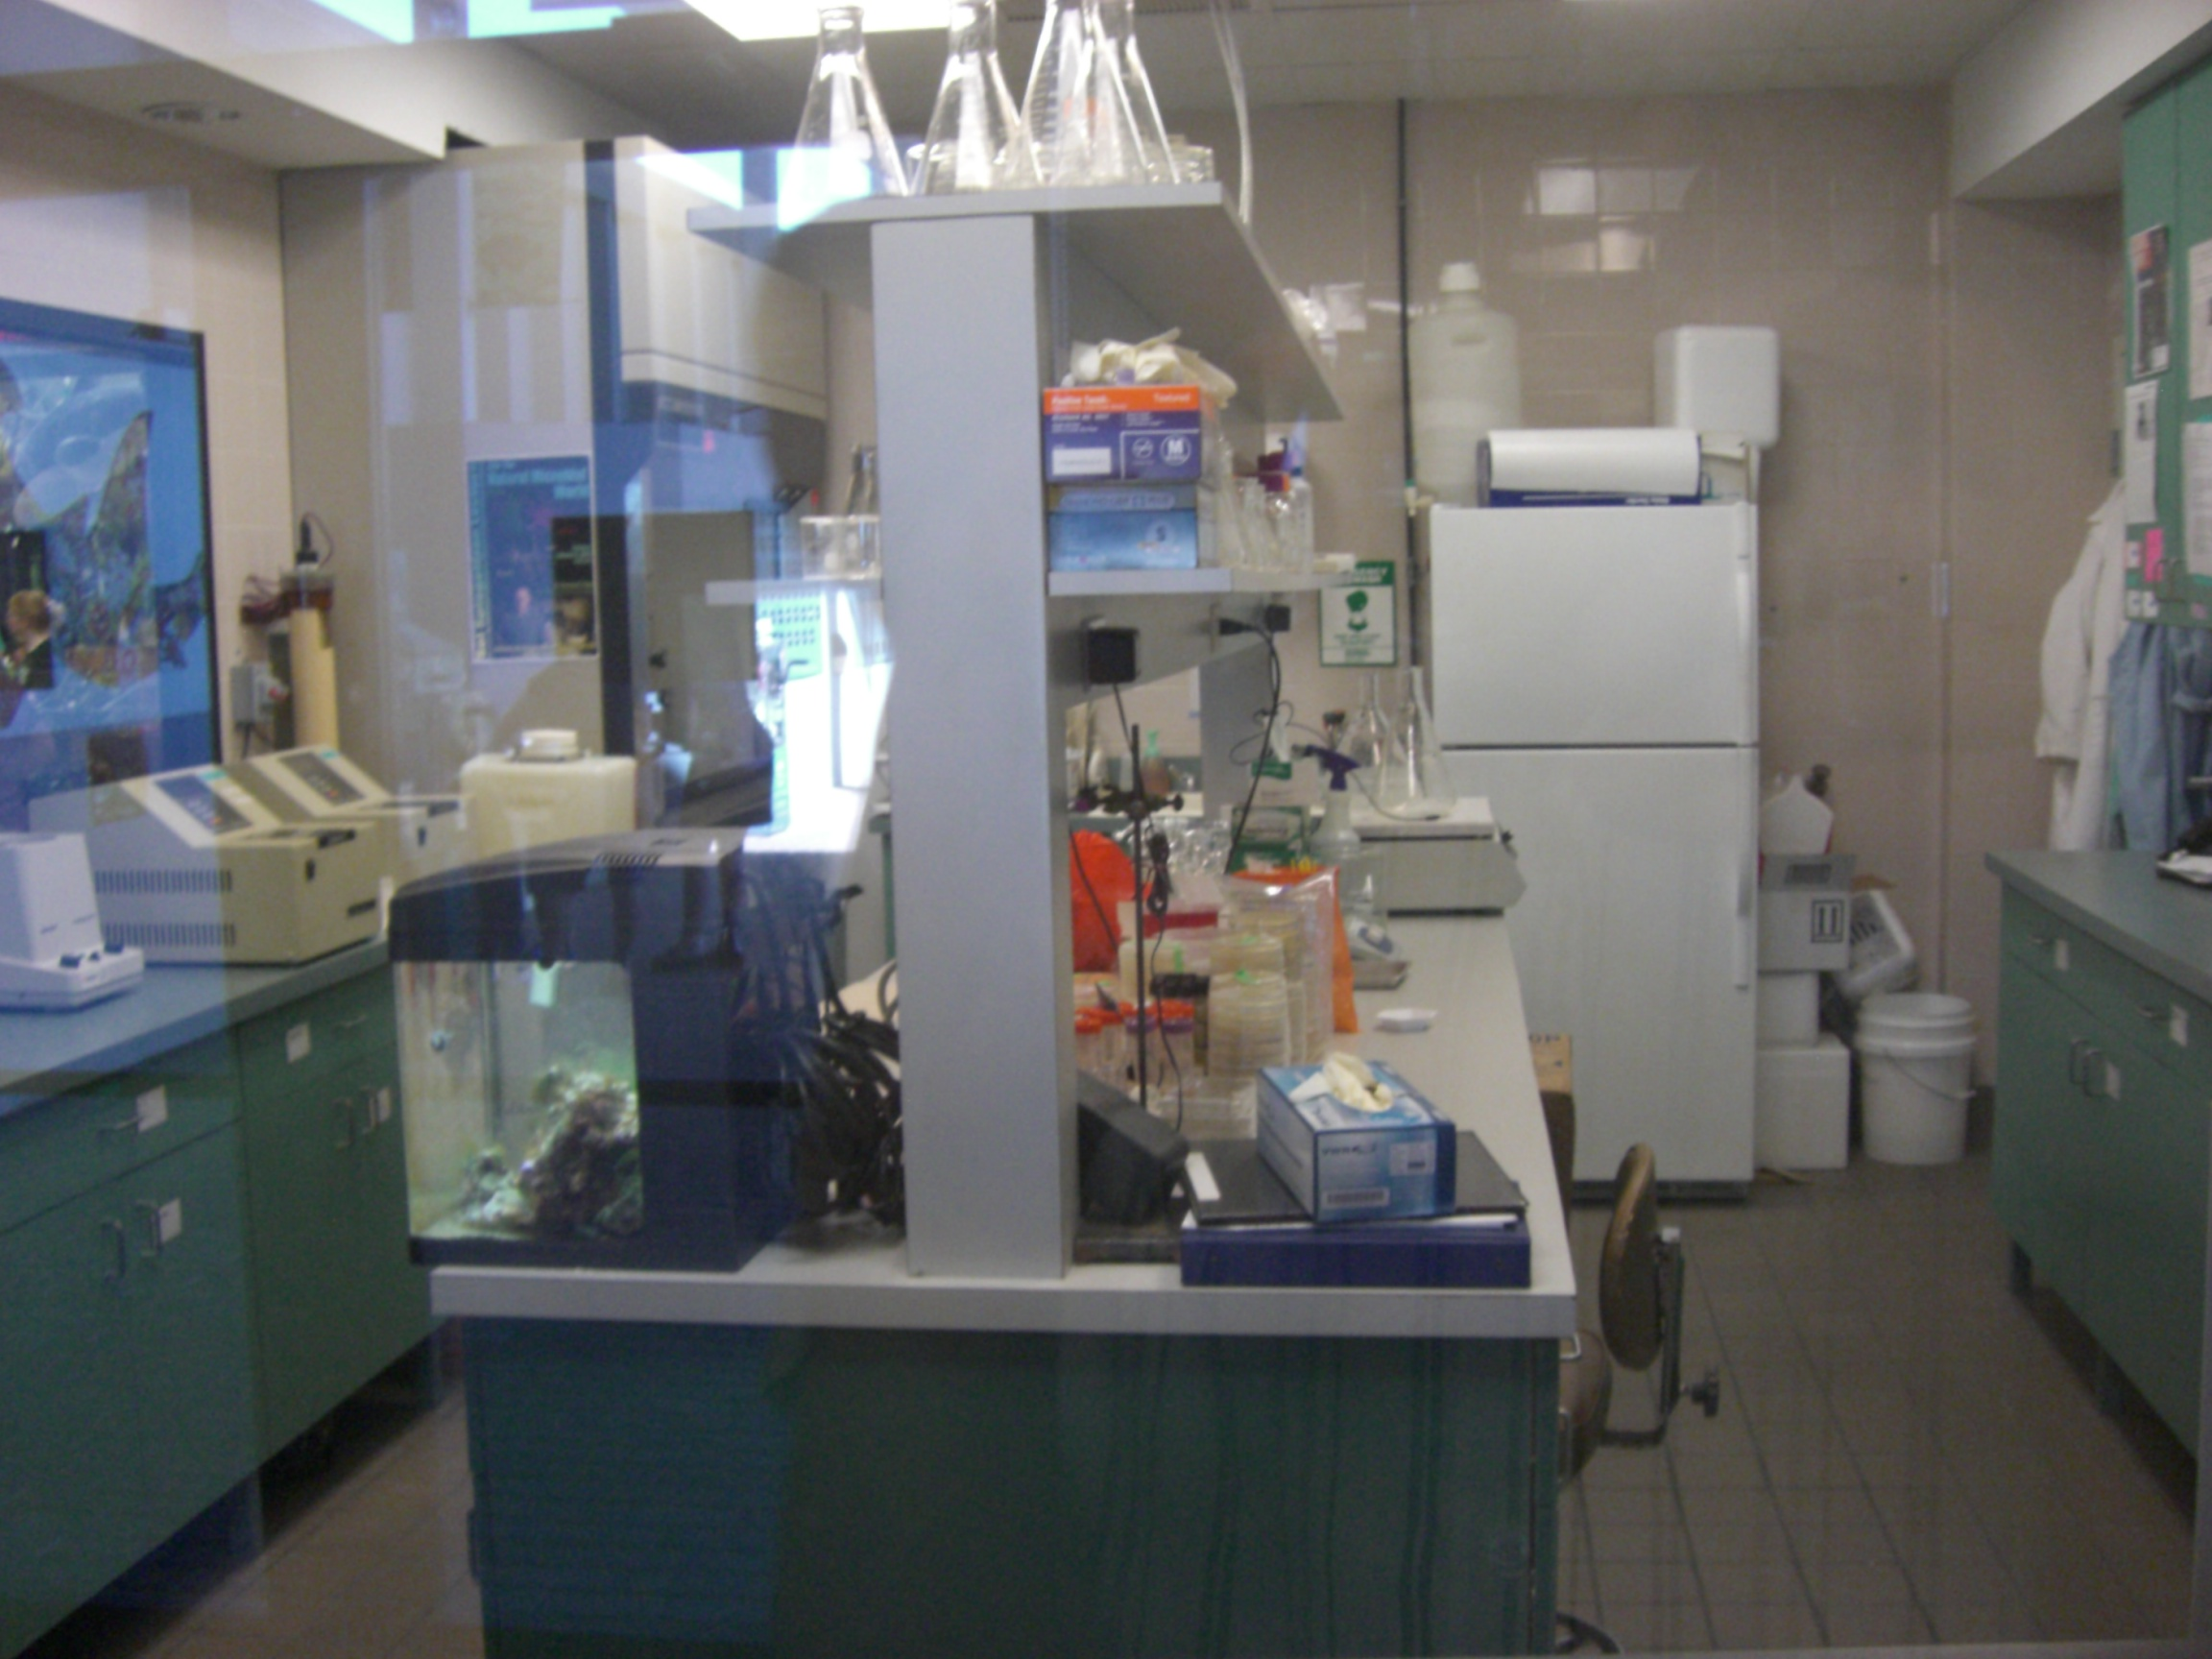 'Behind the Scenes at the Lab' Exhibit